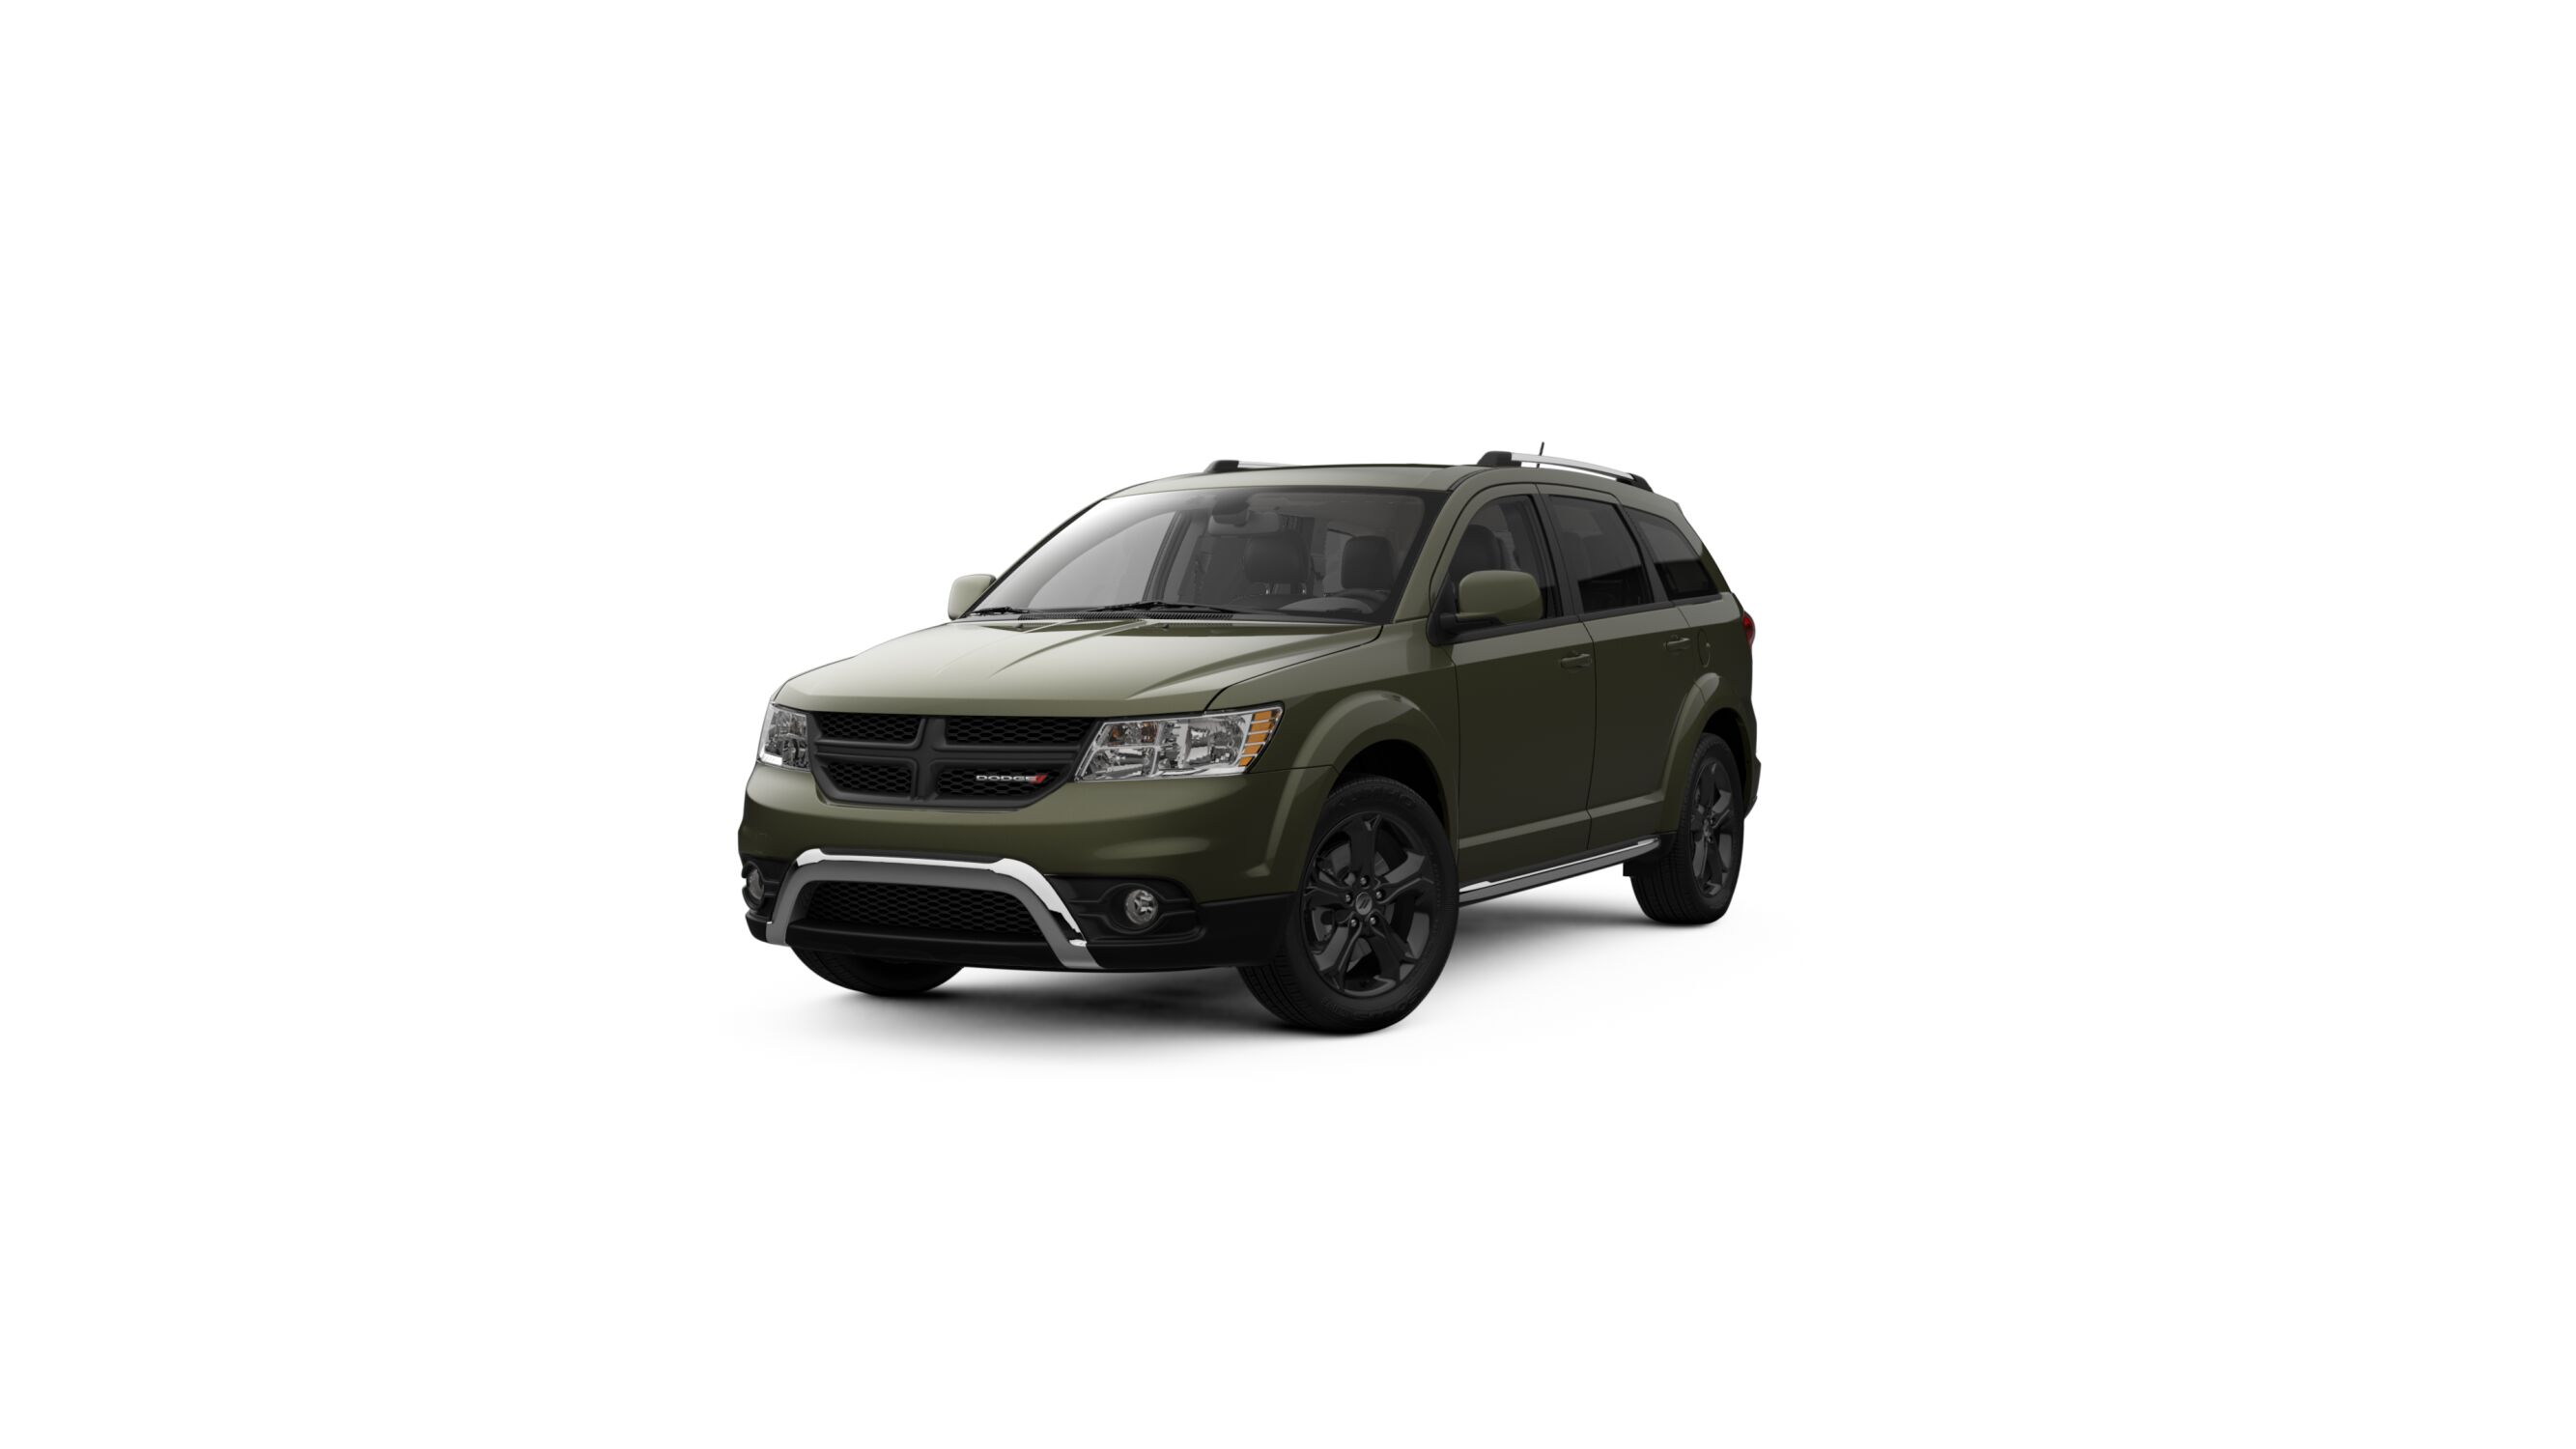 2018 Dodge Journey Crossroad Olive Green Exterior Front View